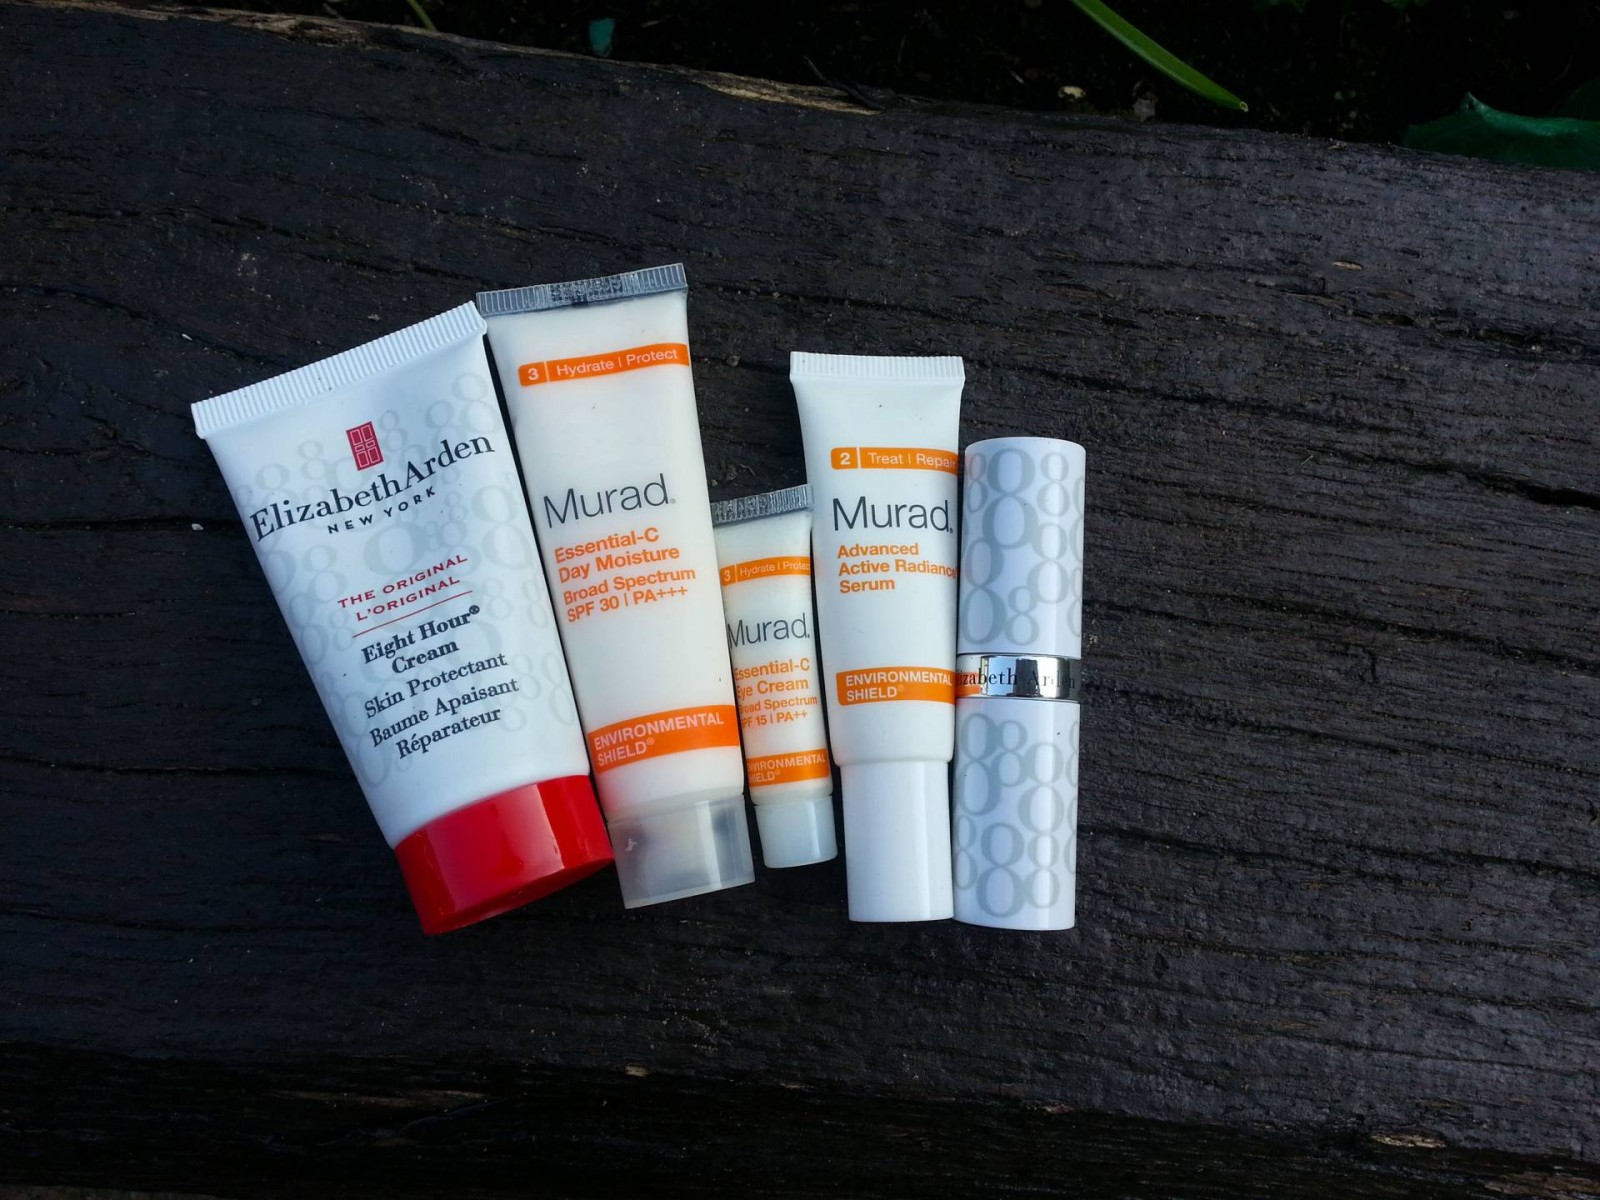 Beauty Essentials for Running Elizabeth Arden Eight Hour Cream Murad Essential-C moisture